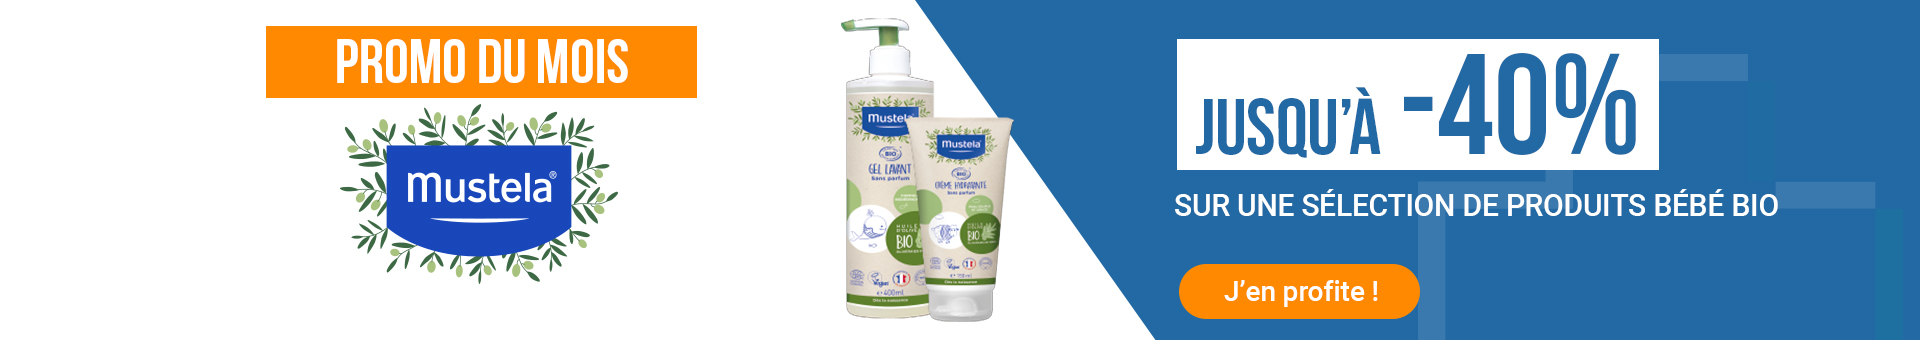 shop-pc-08-2020-mustela-mobile-fr.jpg